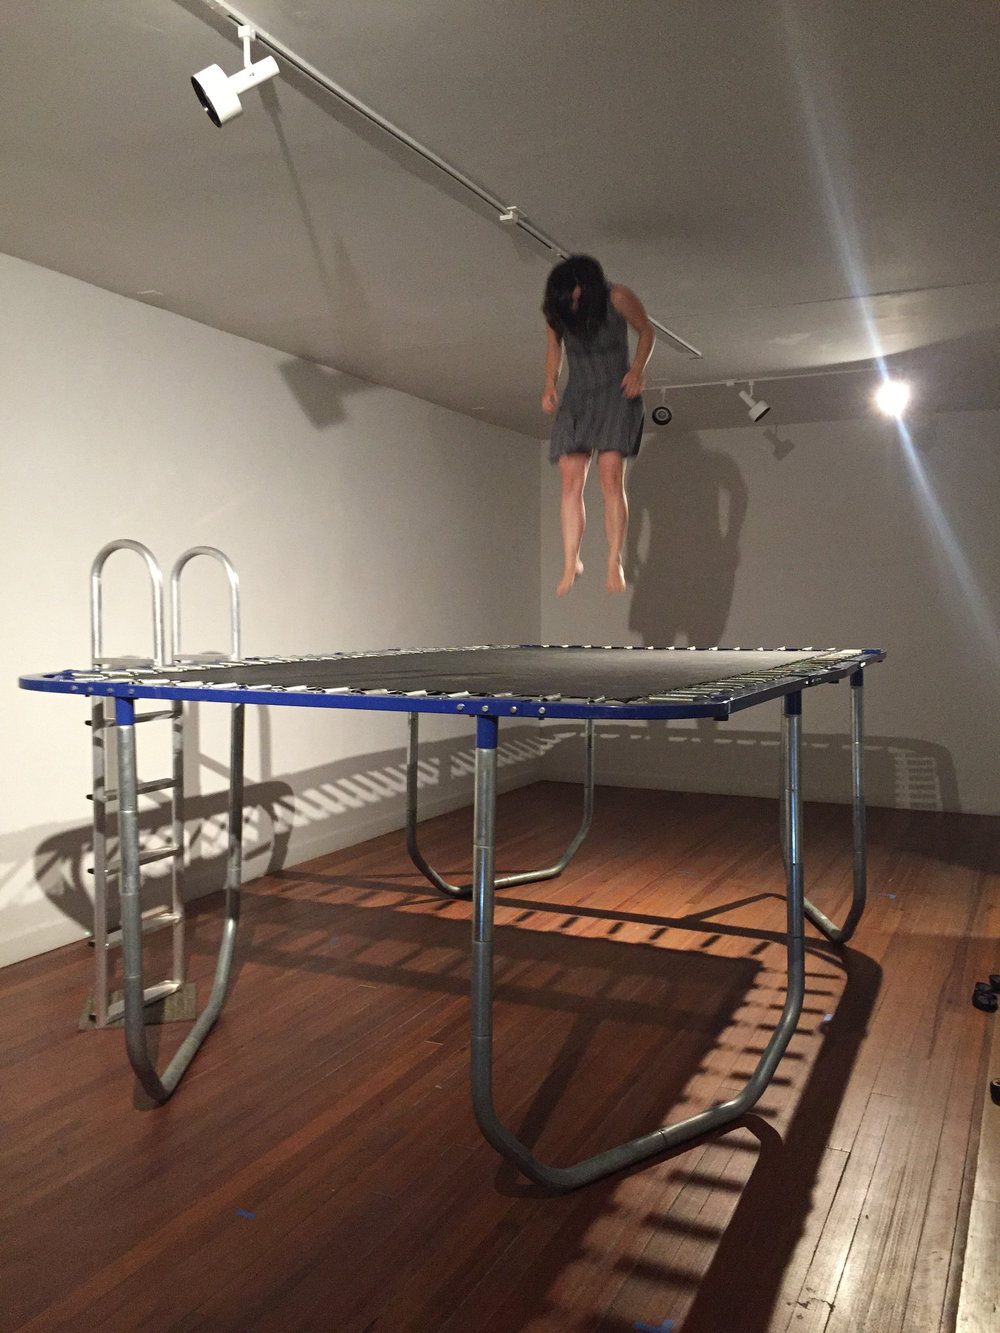 Trey Duvall Cocktail Formal Seaside Narmada Formal (in use), 2016 Trampoline, Paint 5' x 9' x 15'